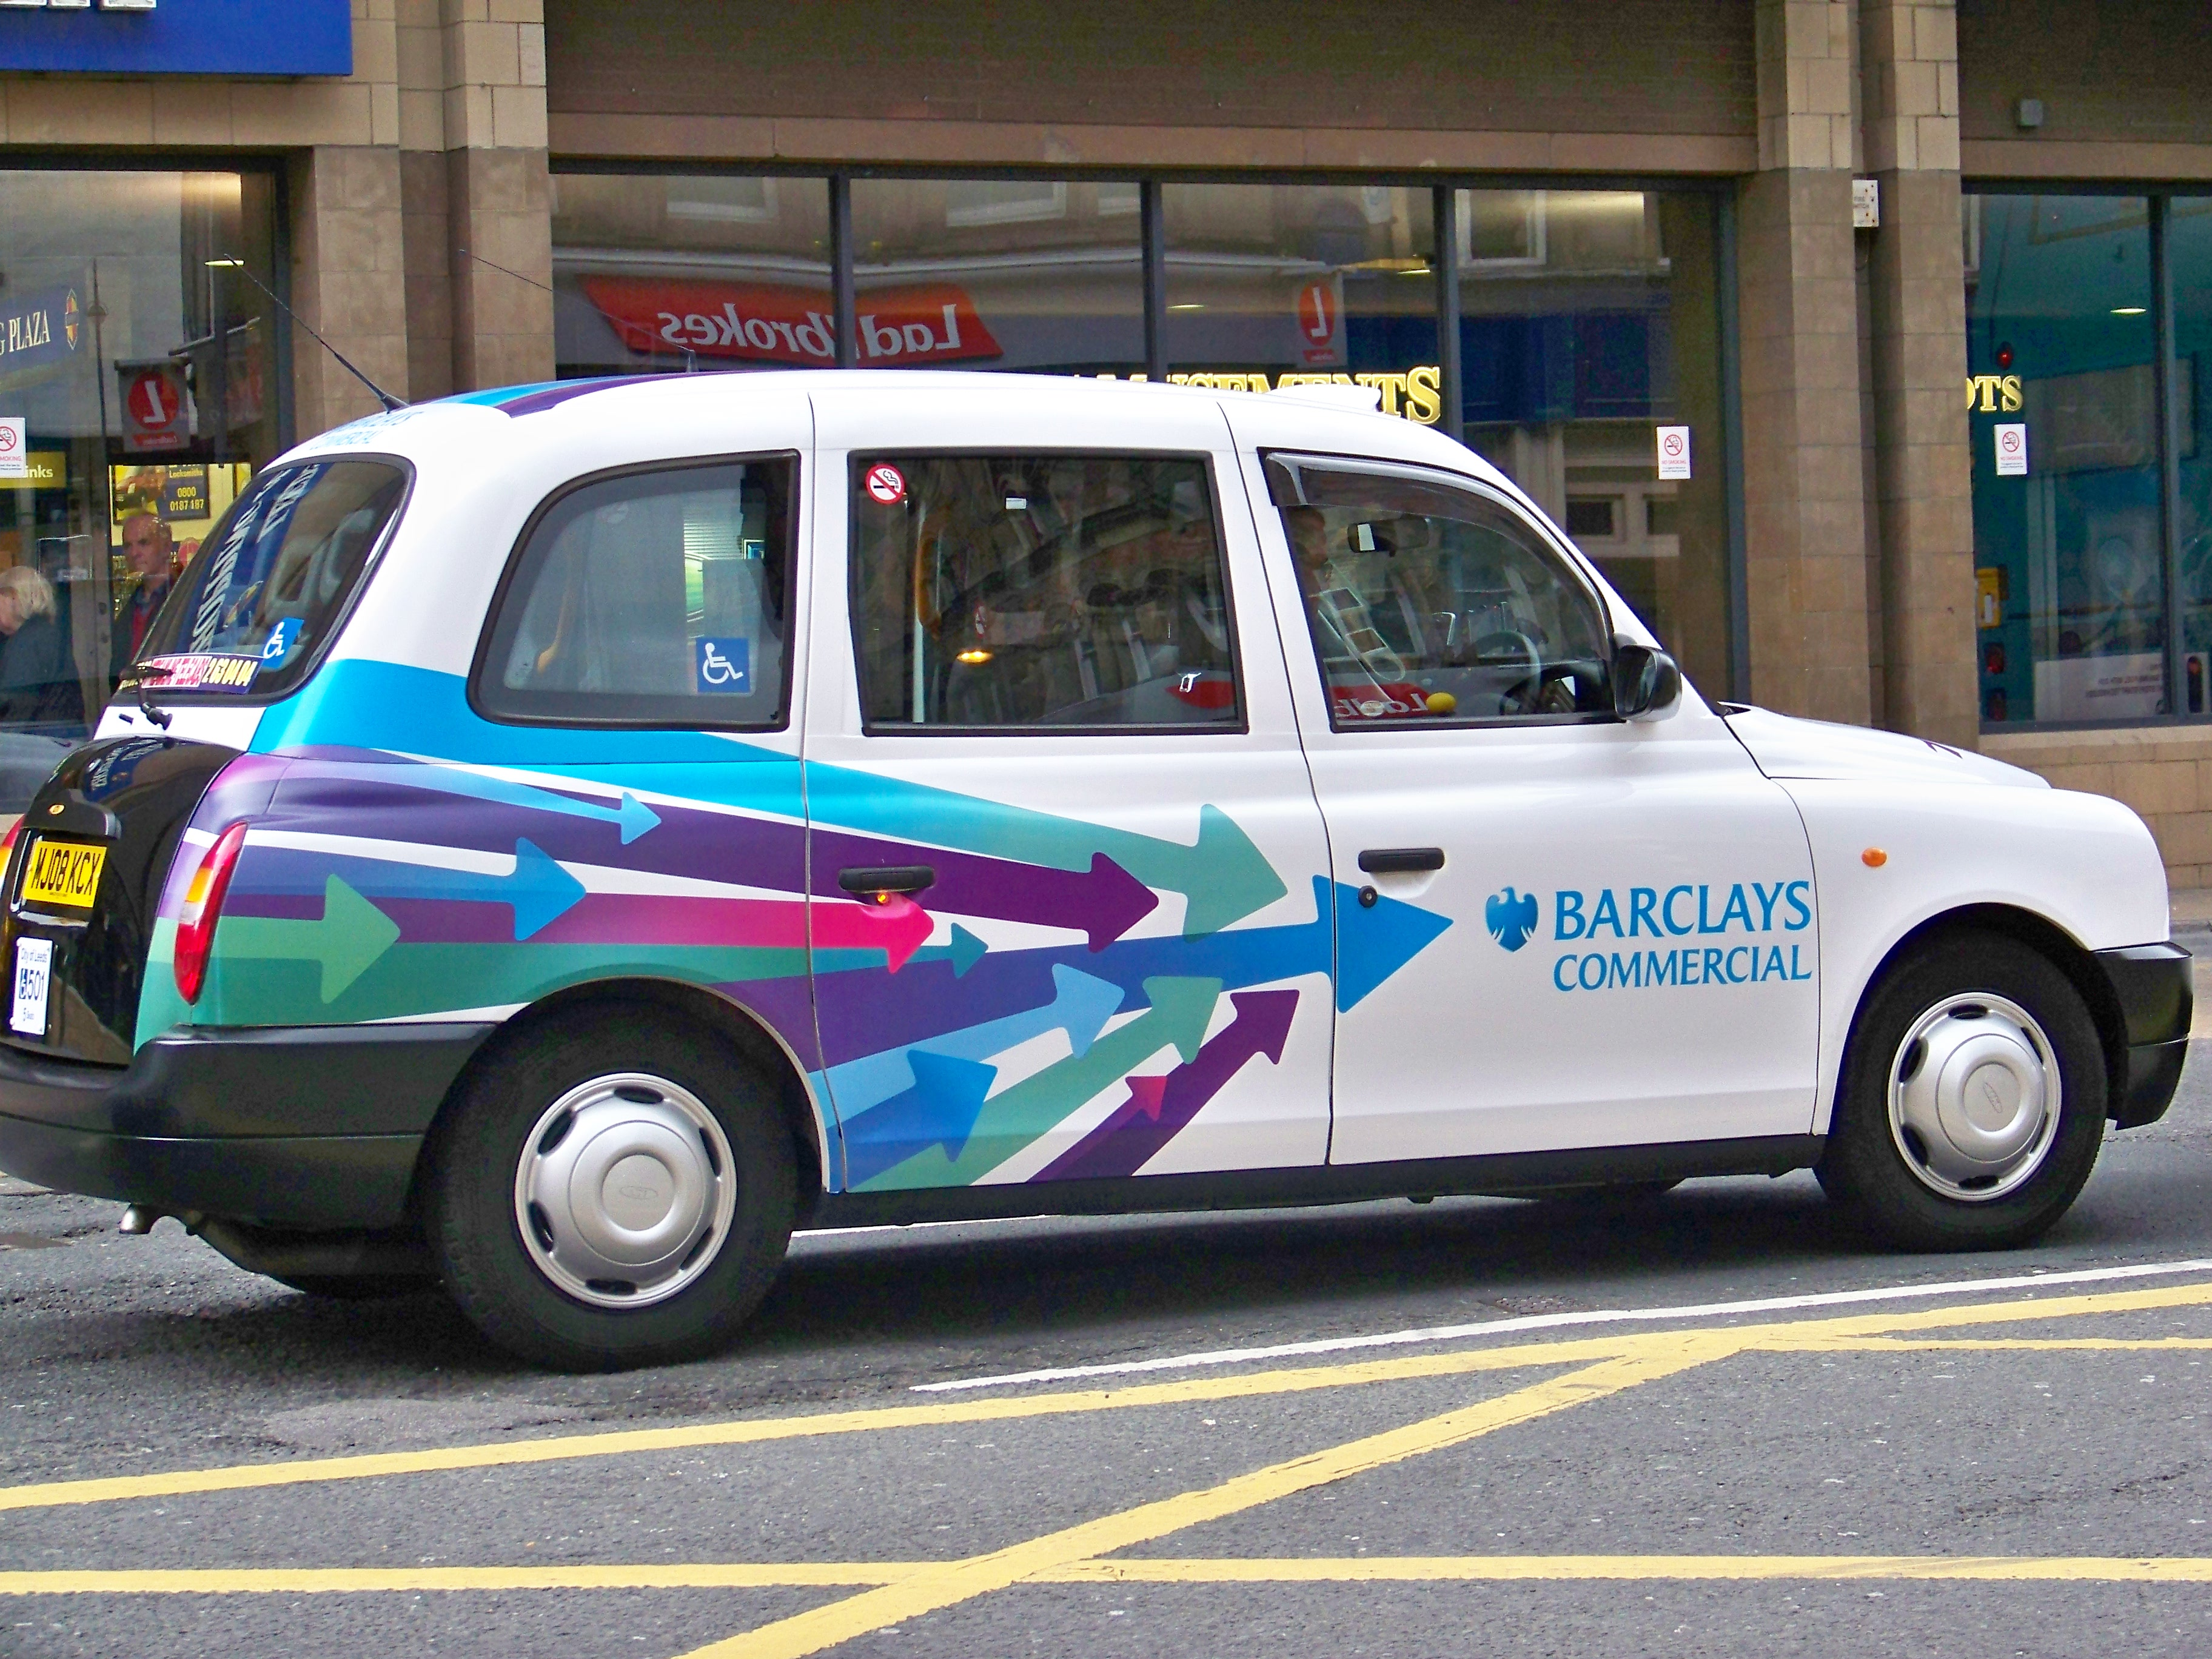 File Leeds Taxi With Barclays Advert Jpg Wikimedia Commons